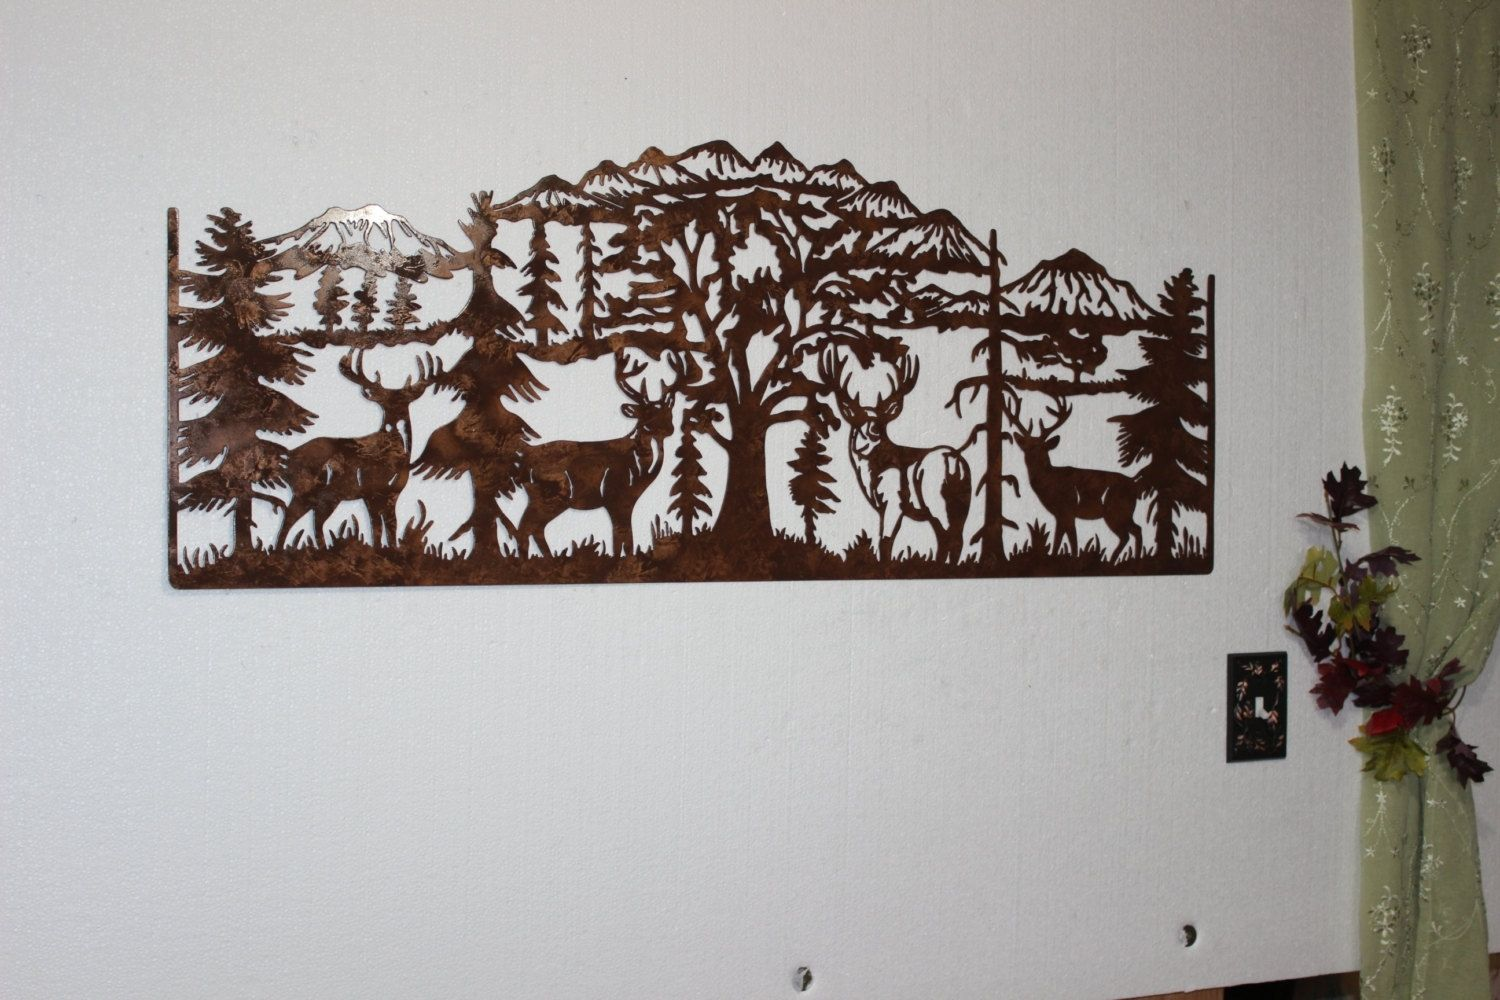 Rustic Outdoor Metal Wall Art Hand Crafted Deer And Mountain Scene With 4 Majestic Bucks